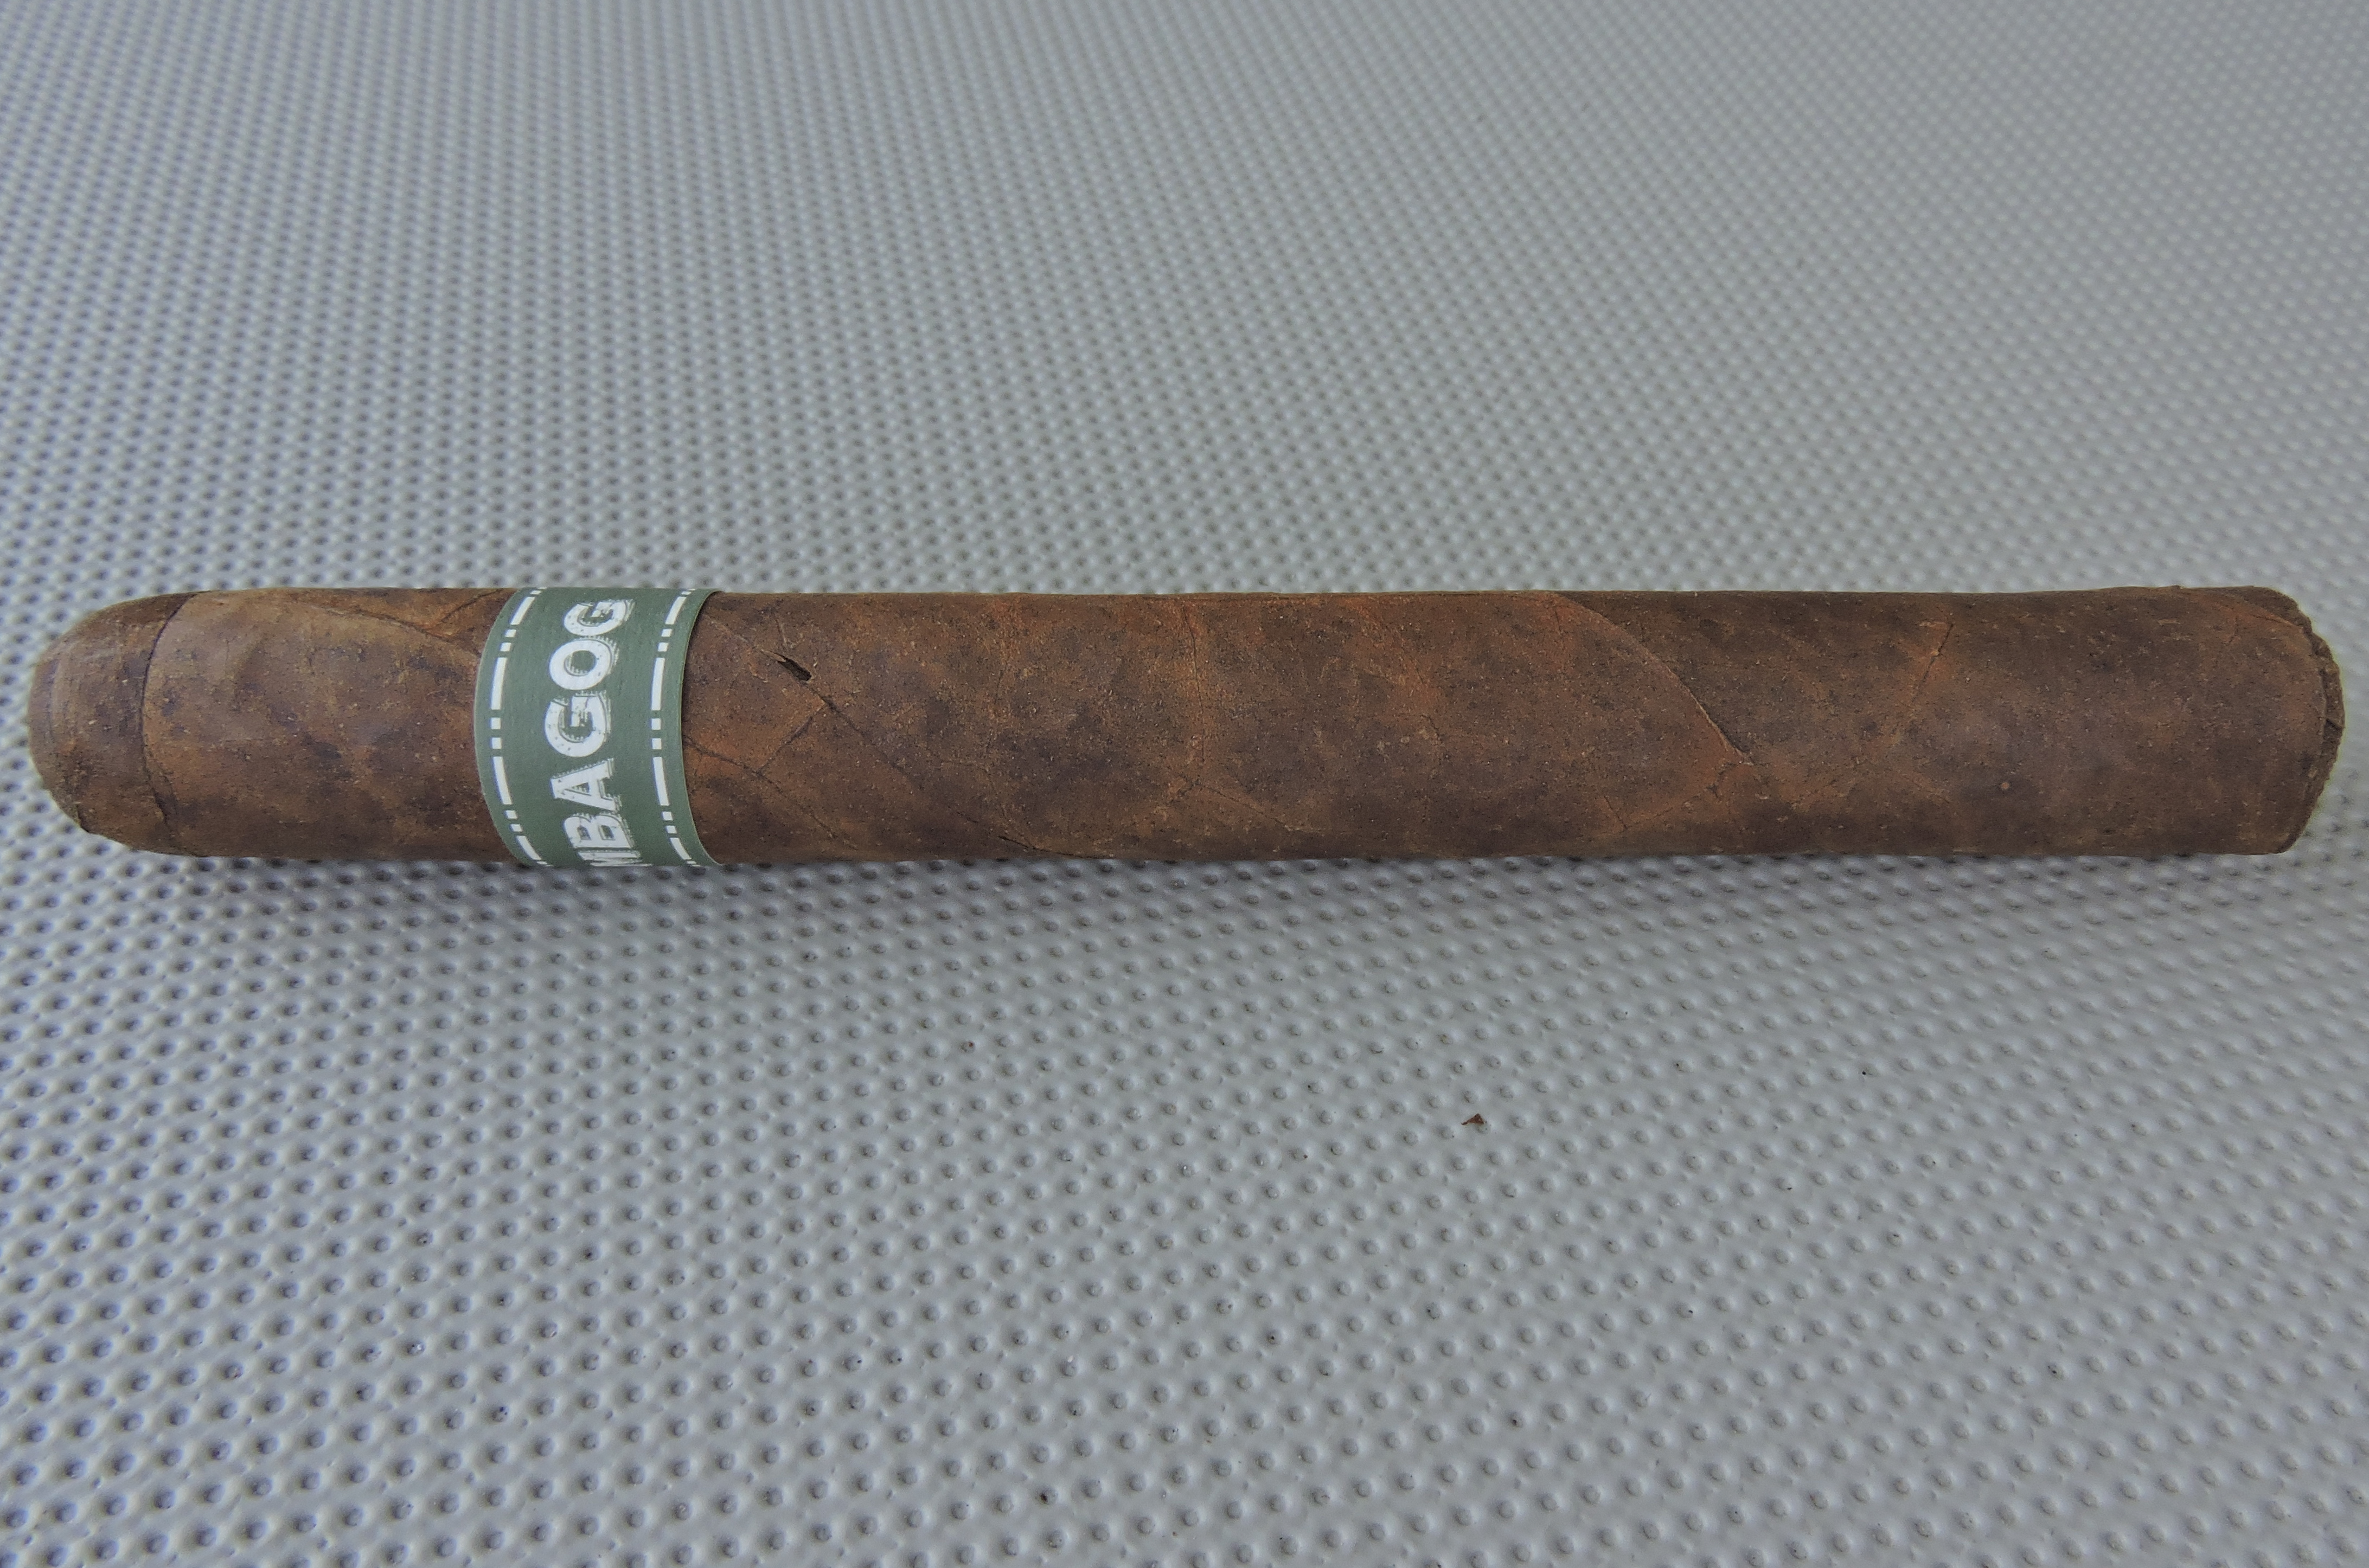 Cigar Review: Umbagog Corona Gorda by Dunbarton Tobacco and Trust